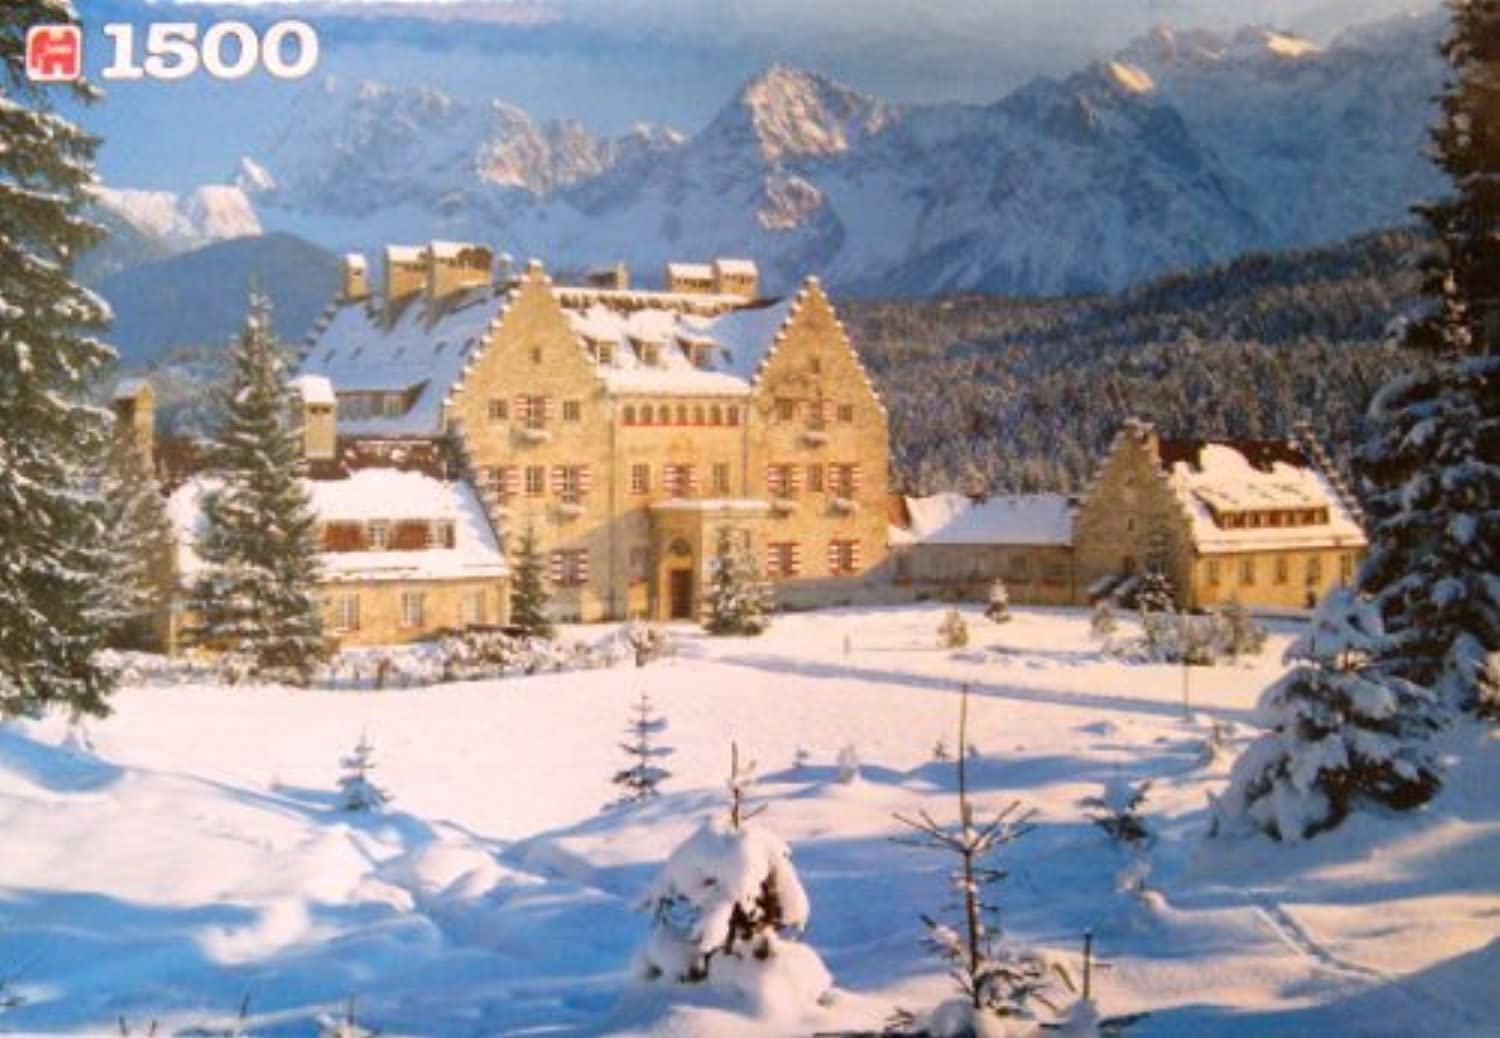 Ellmau in the Snow, Austria   1500 Piece Puzzle by Jumbo